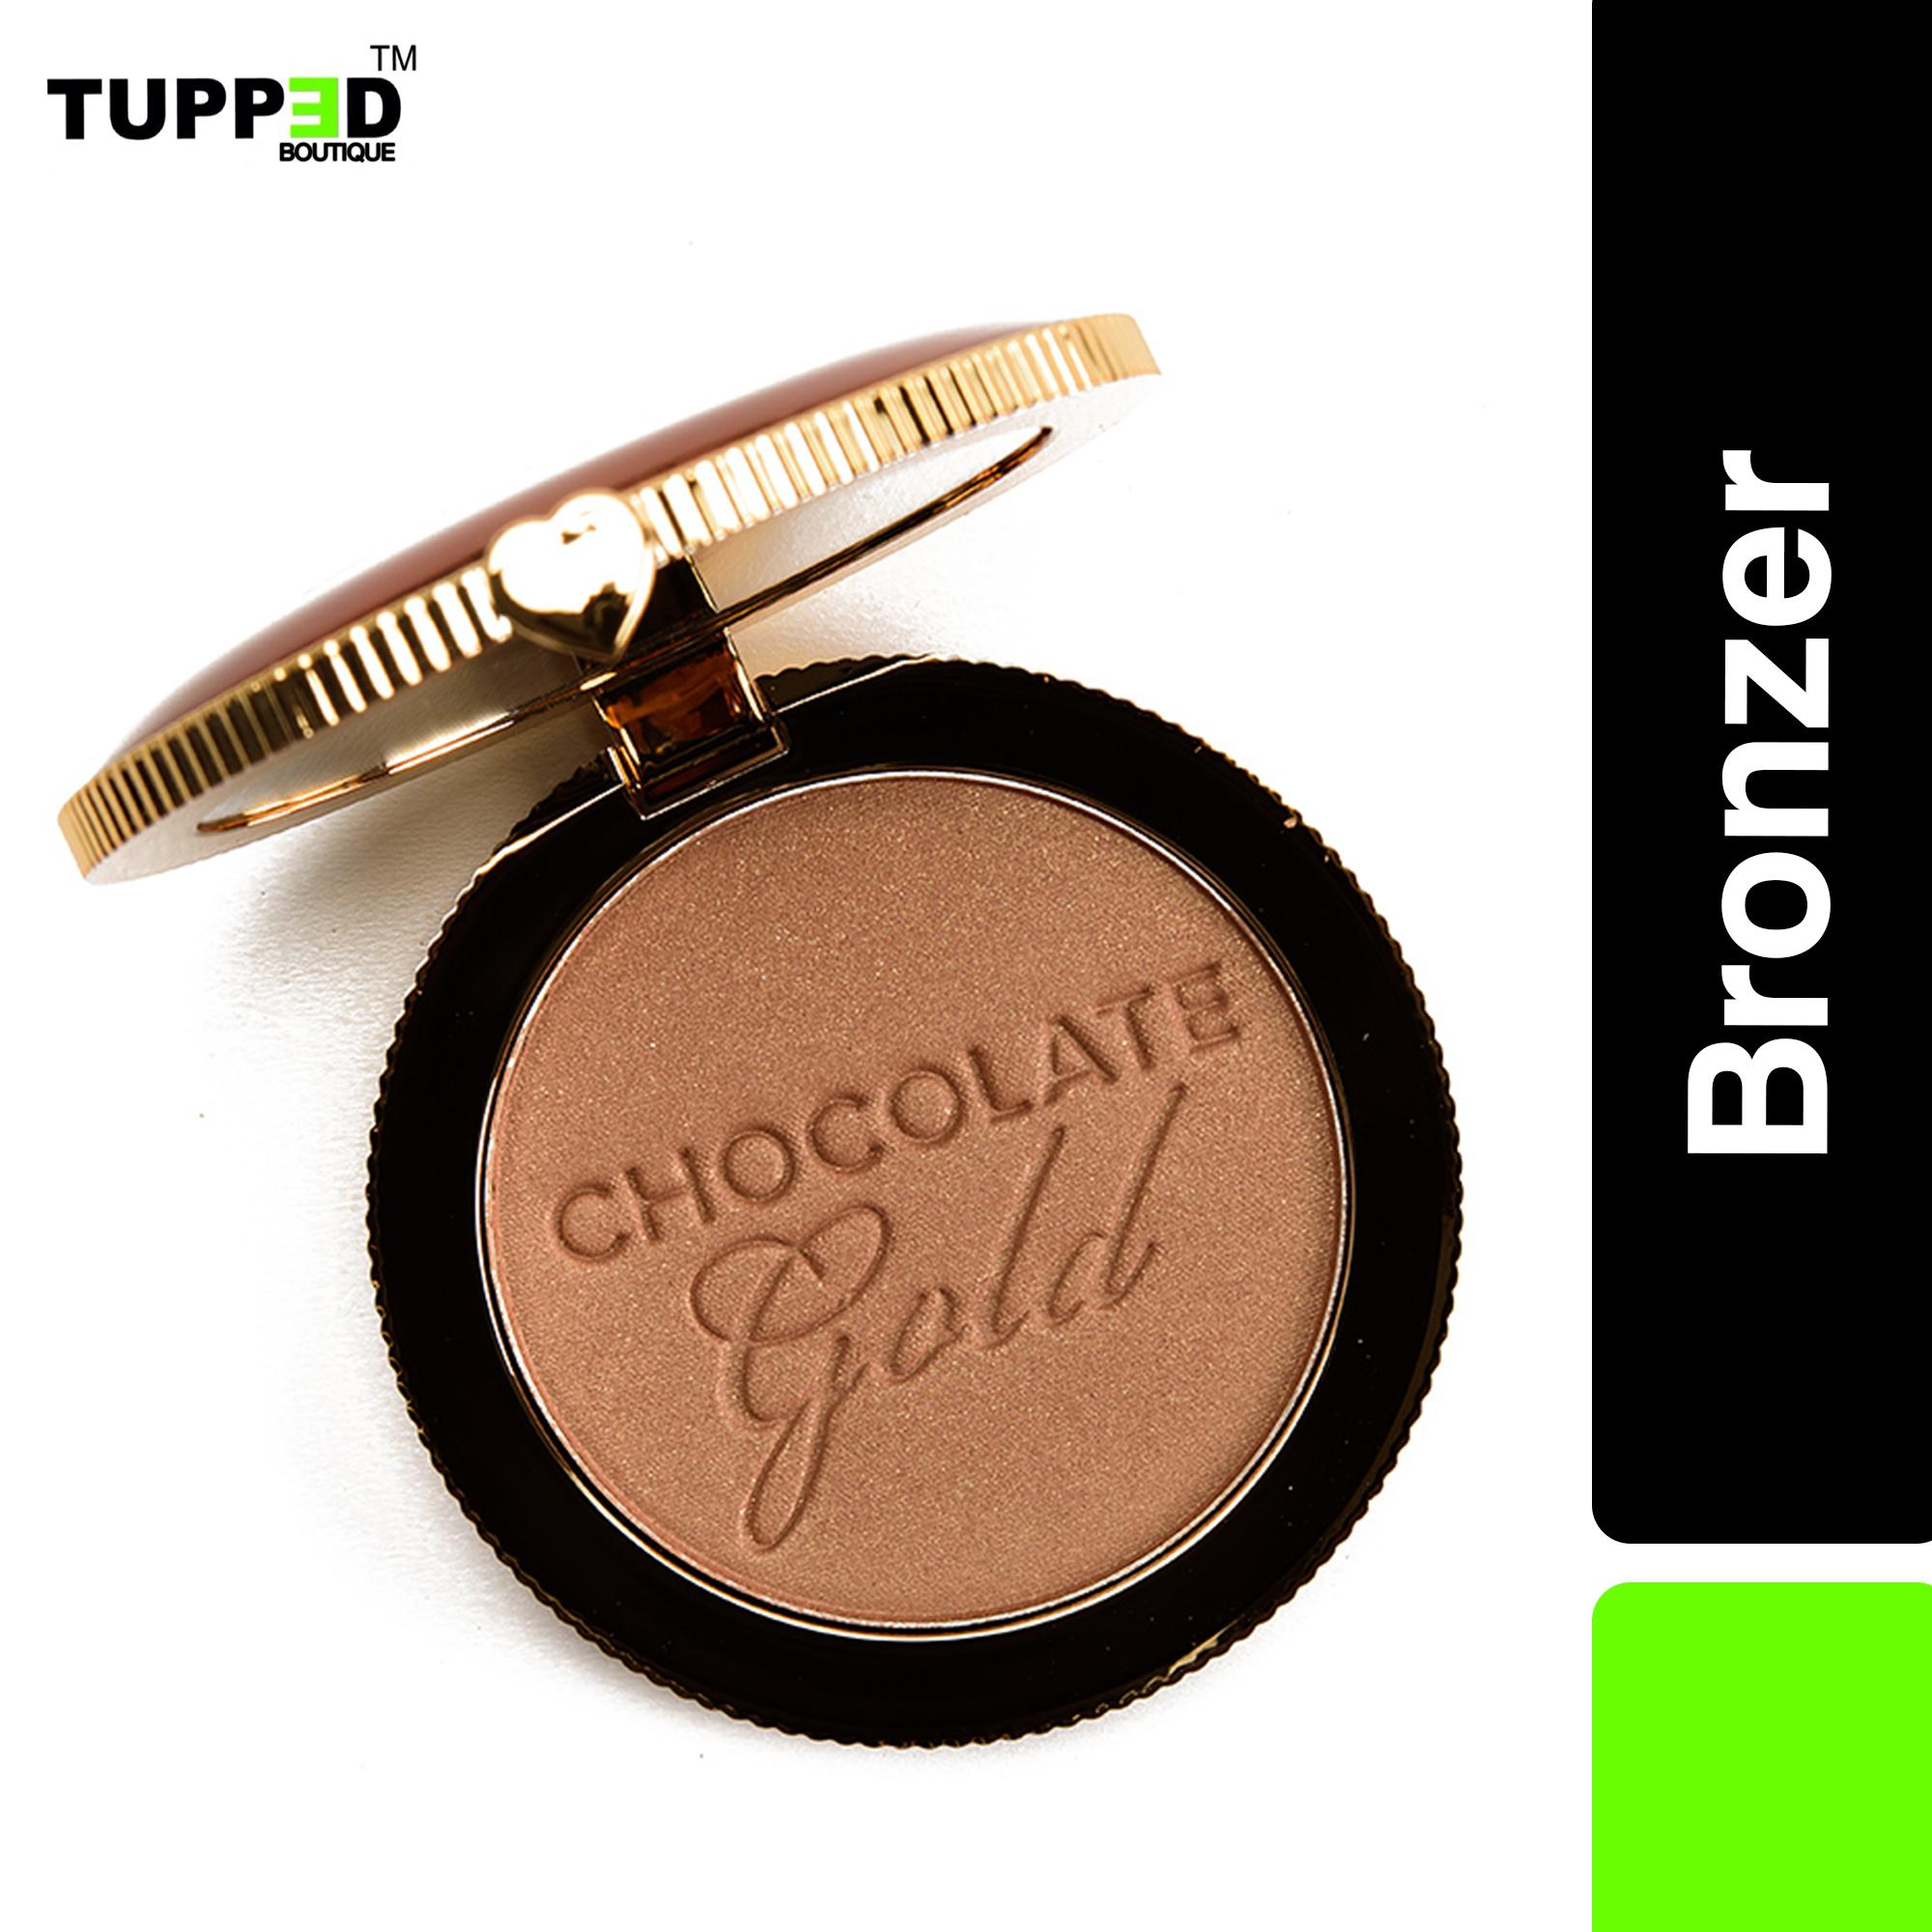 Too Faced Chocolate Gold Soleil Bronzer Philippines